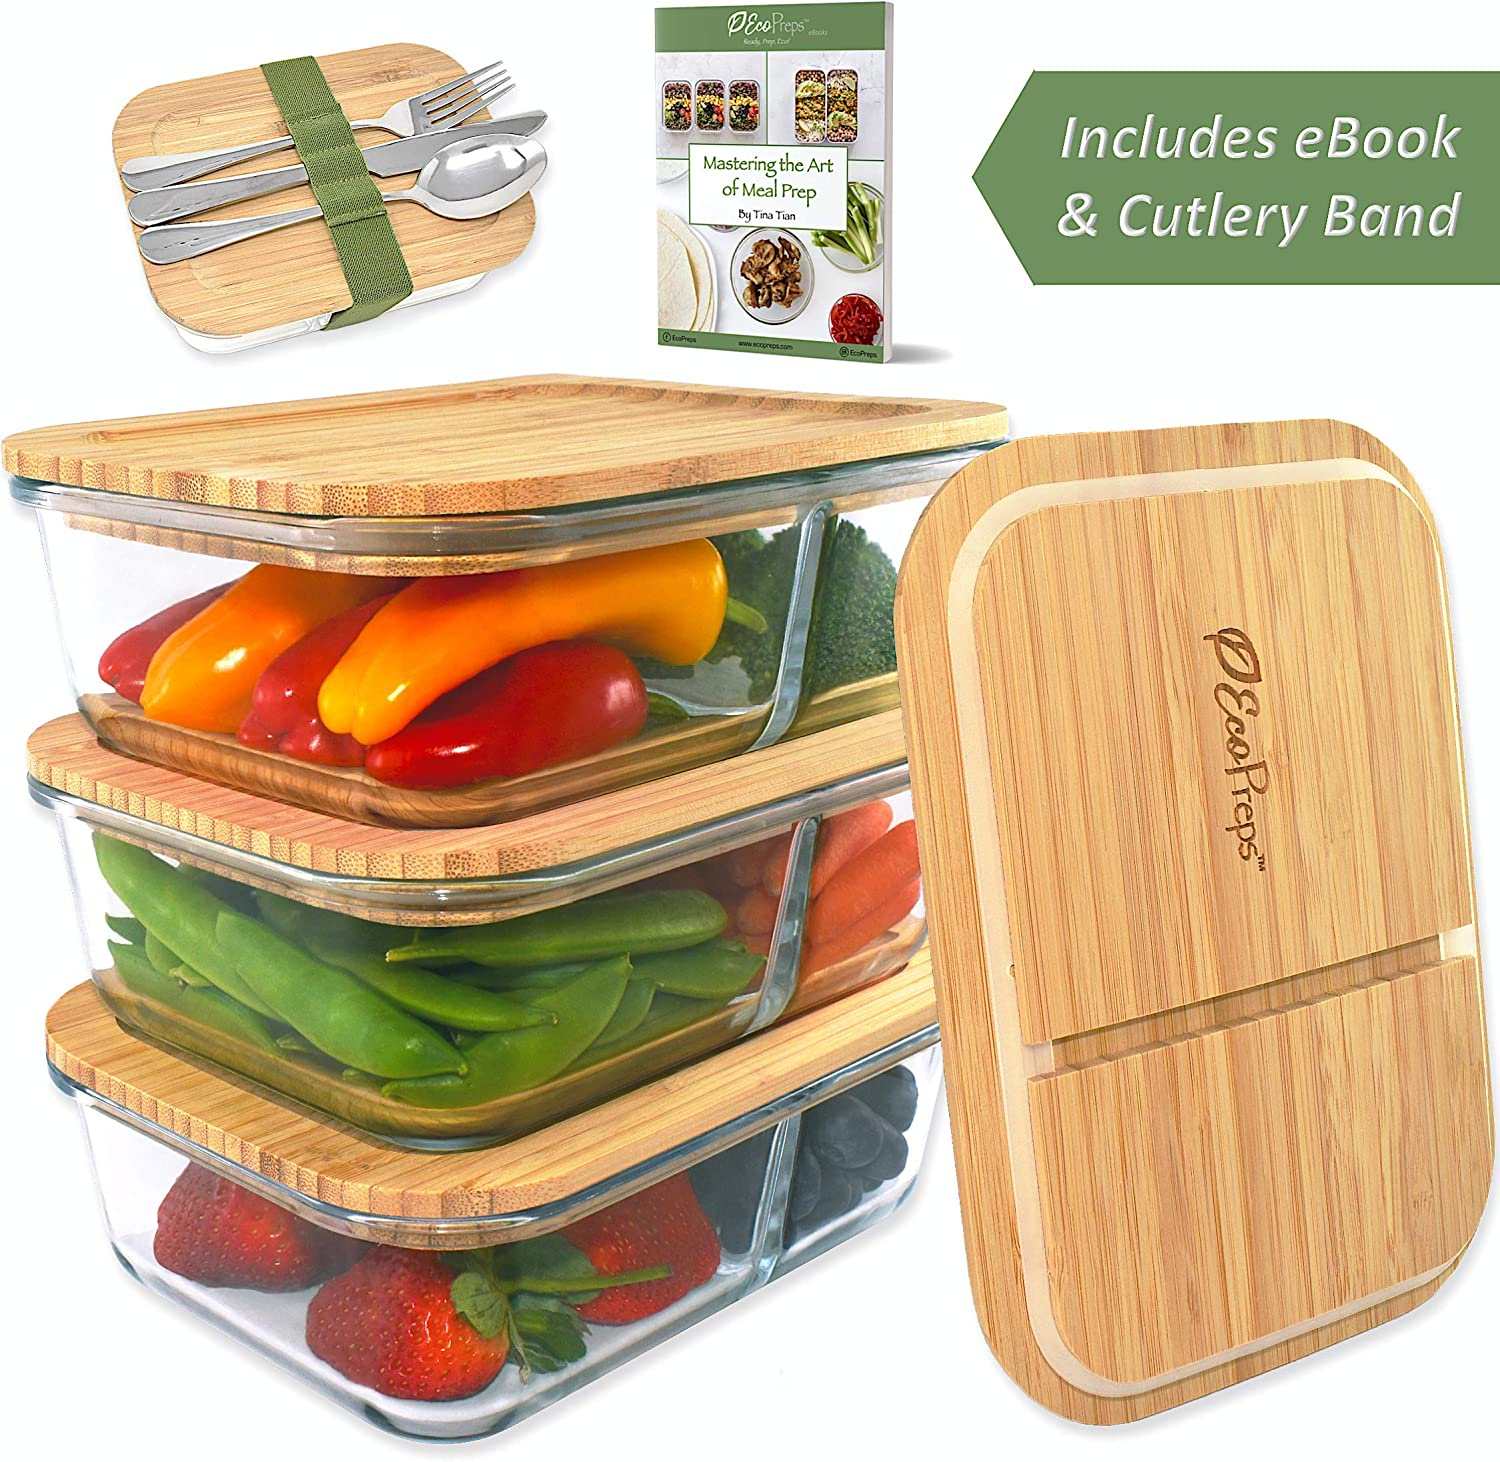 ECOPREPS Glass Meal Prep Containers with Bamboo Lids + Cutlery Band 》The Most Eco-Friendly Lunch Container on the Planet 》100% Plastic-Free, Reusable, Microwaveable Food Storage【2 Compartment, 3 Pack】